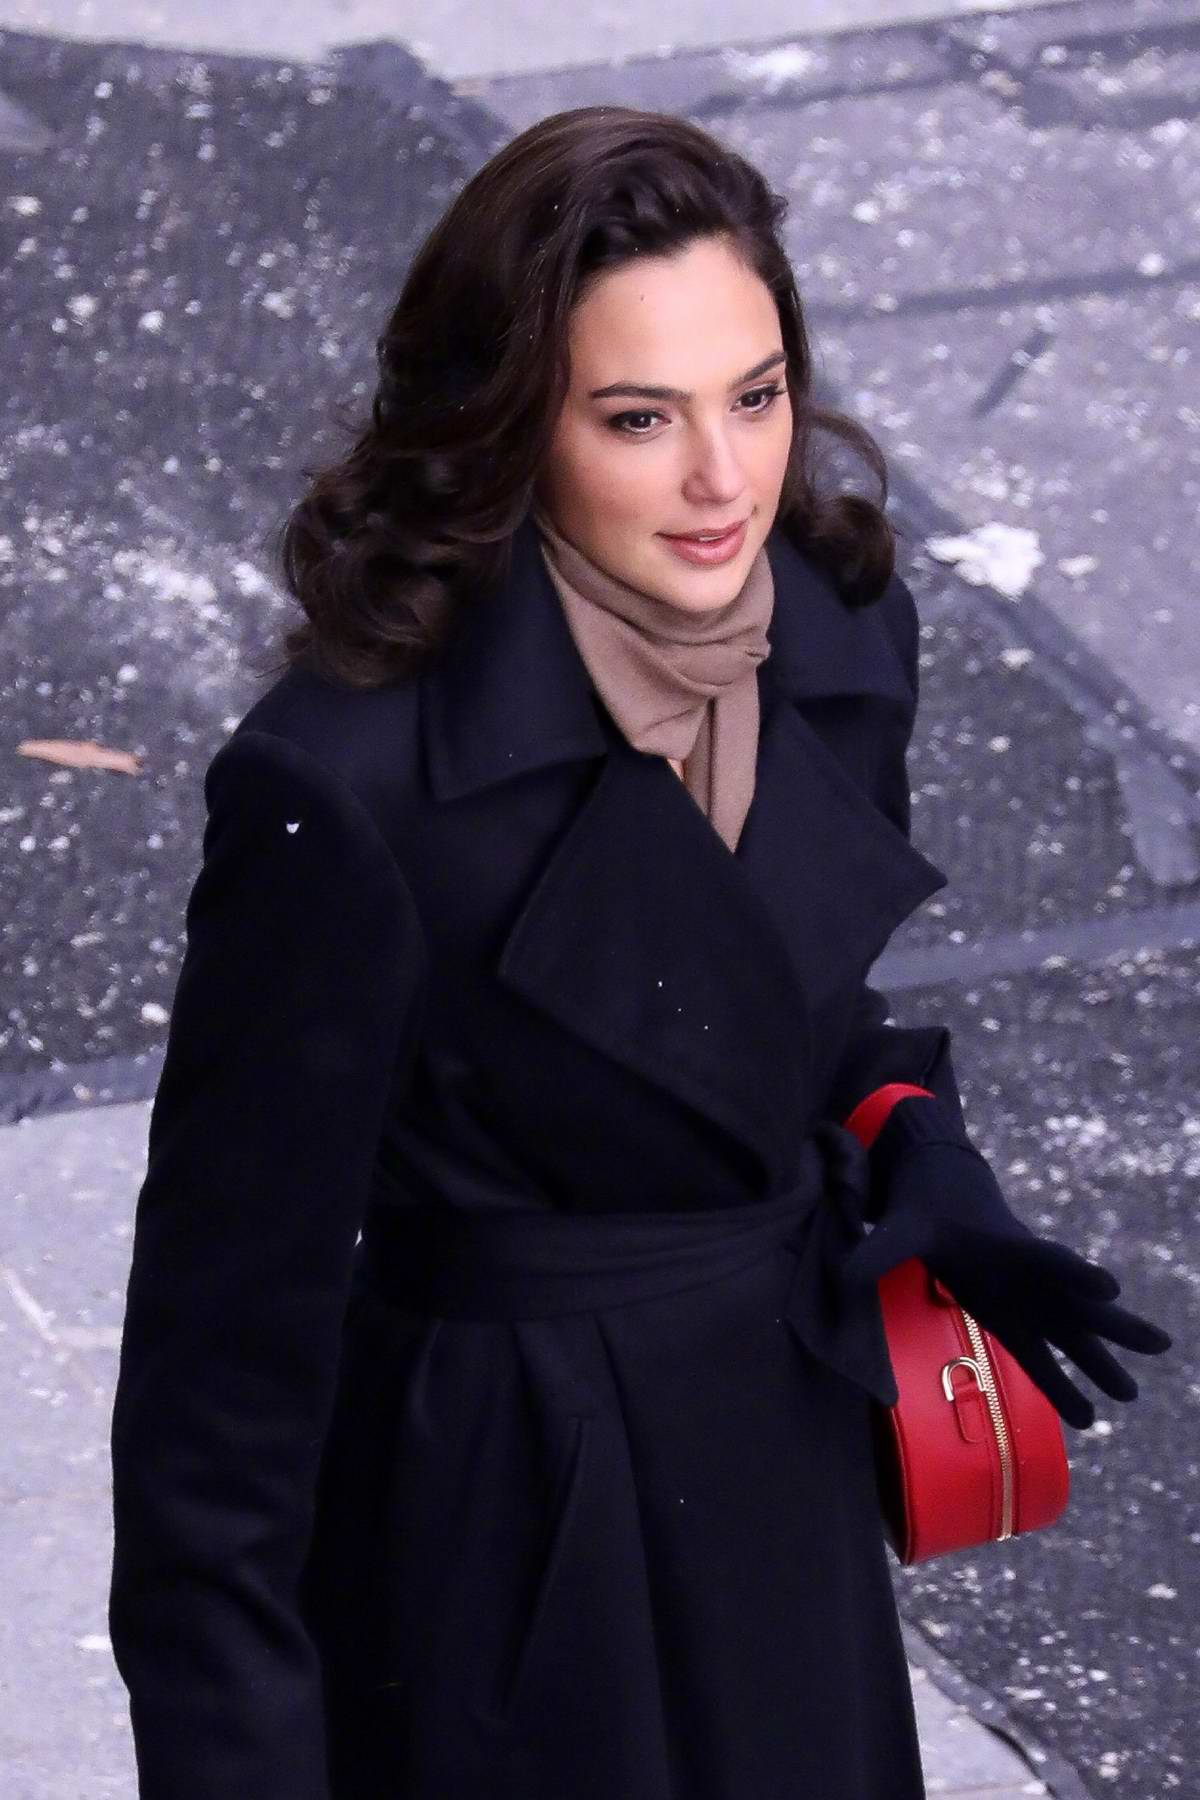 Gal Gadot seen on the set of Wonder Woman 1984 in Central London, UK